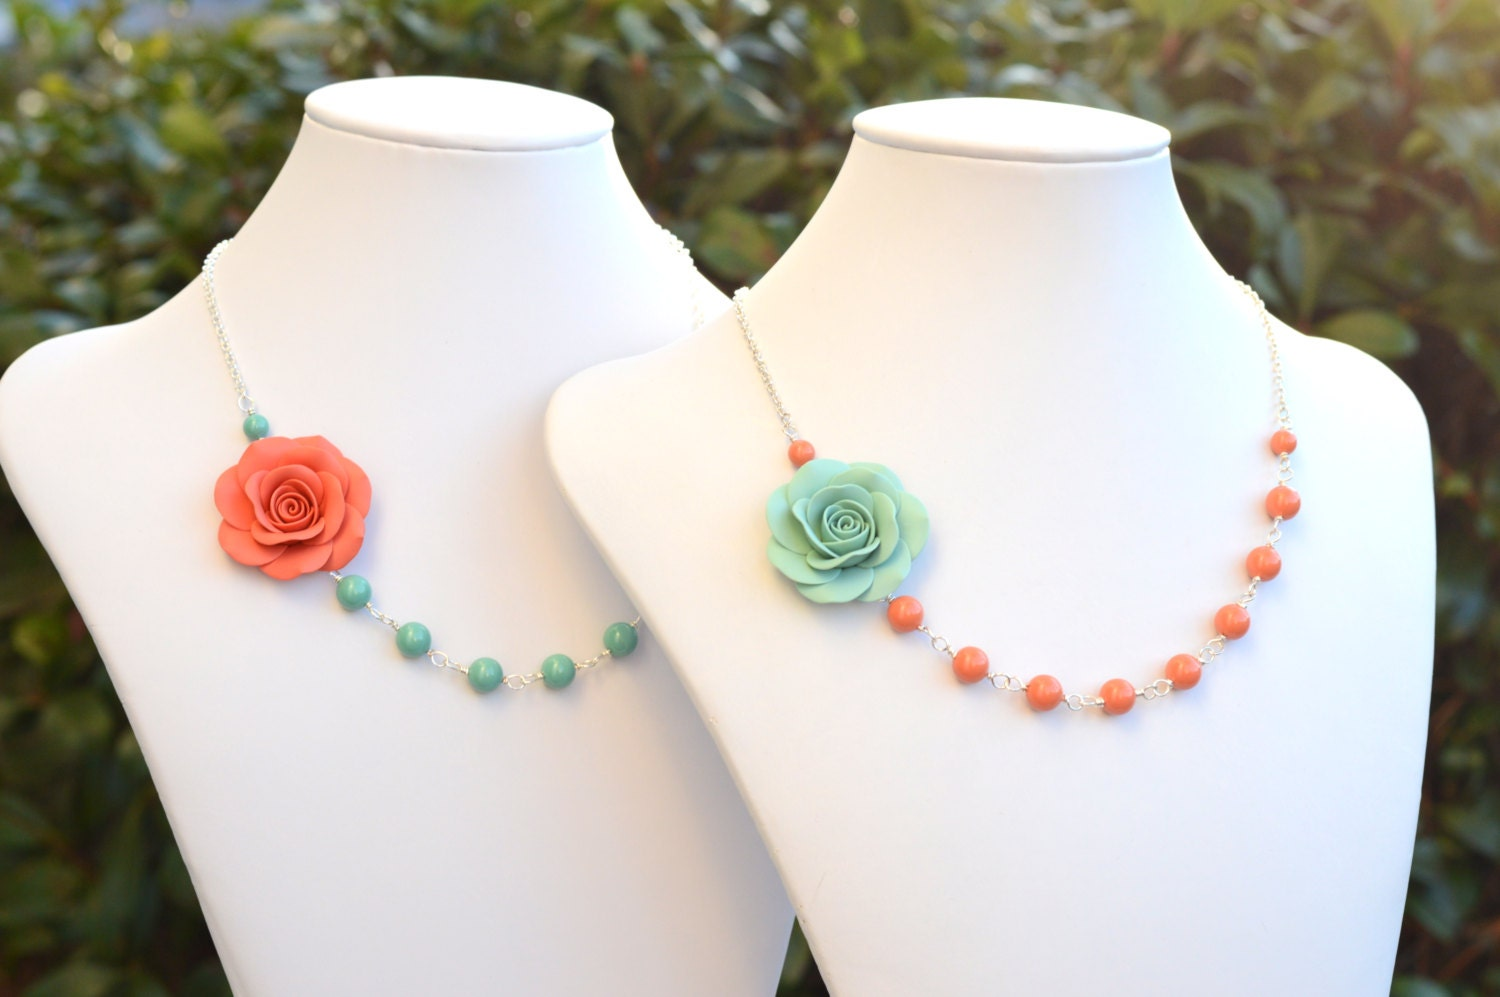 FREE EARRINGS Dusty Mint Rose and Coral Swarovski Pearls, Coral Orange Rose and Jade Green Swarovski Pearls, Mint and Coral Flower Necklace